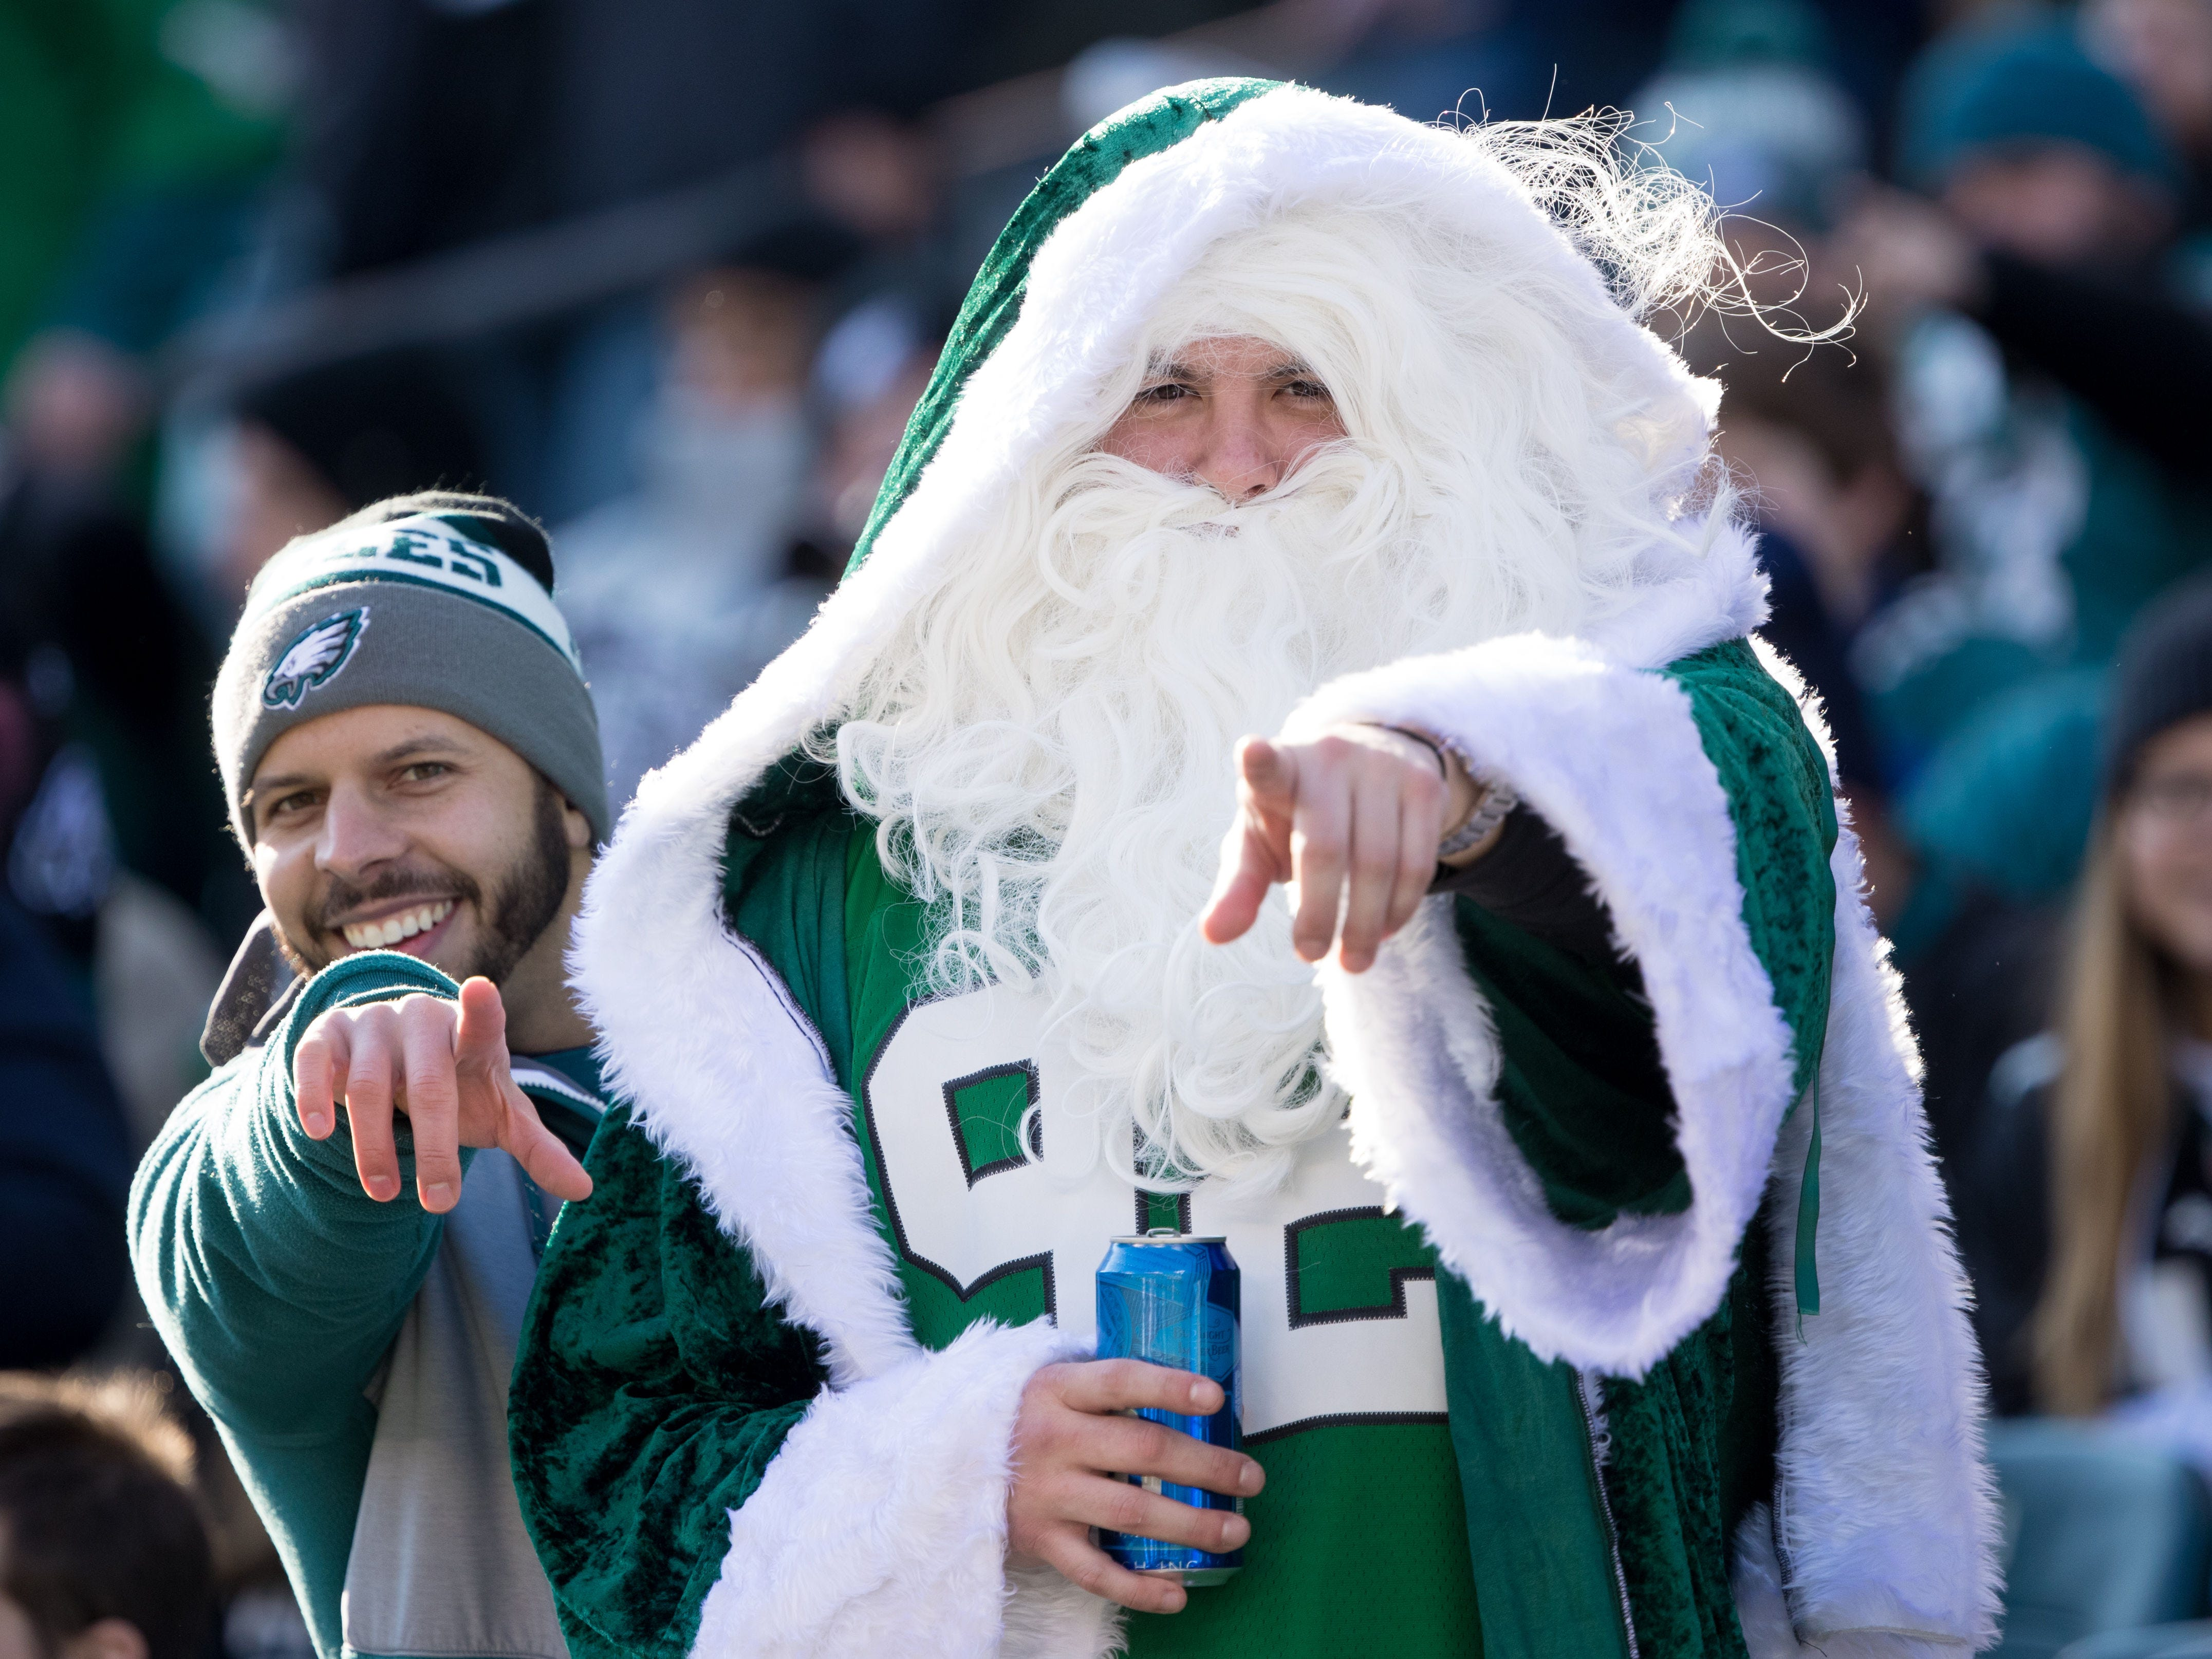 Philadelphia Eagles fans cheer on before the start of action against the Houston Texans at Lincoln Financial Field.